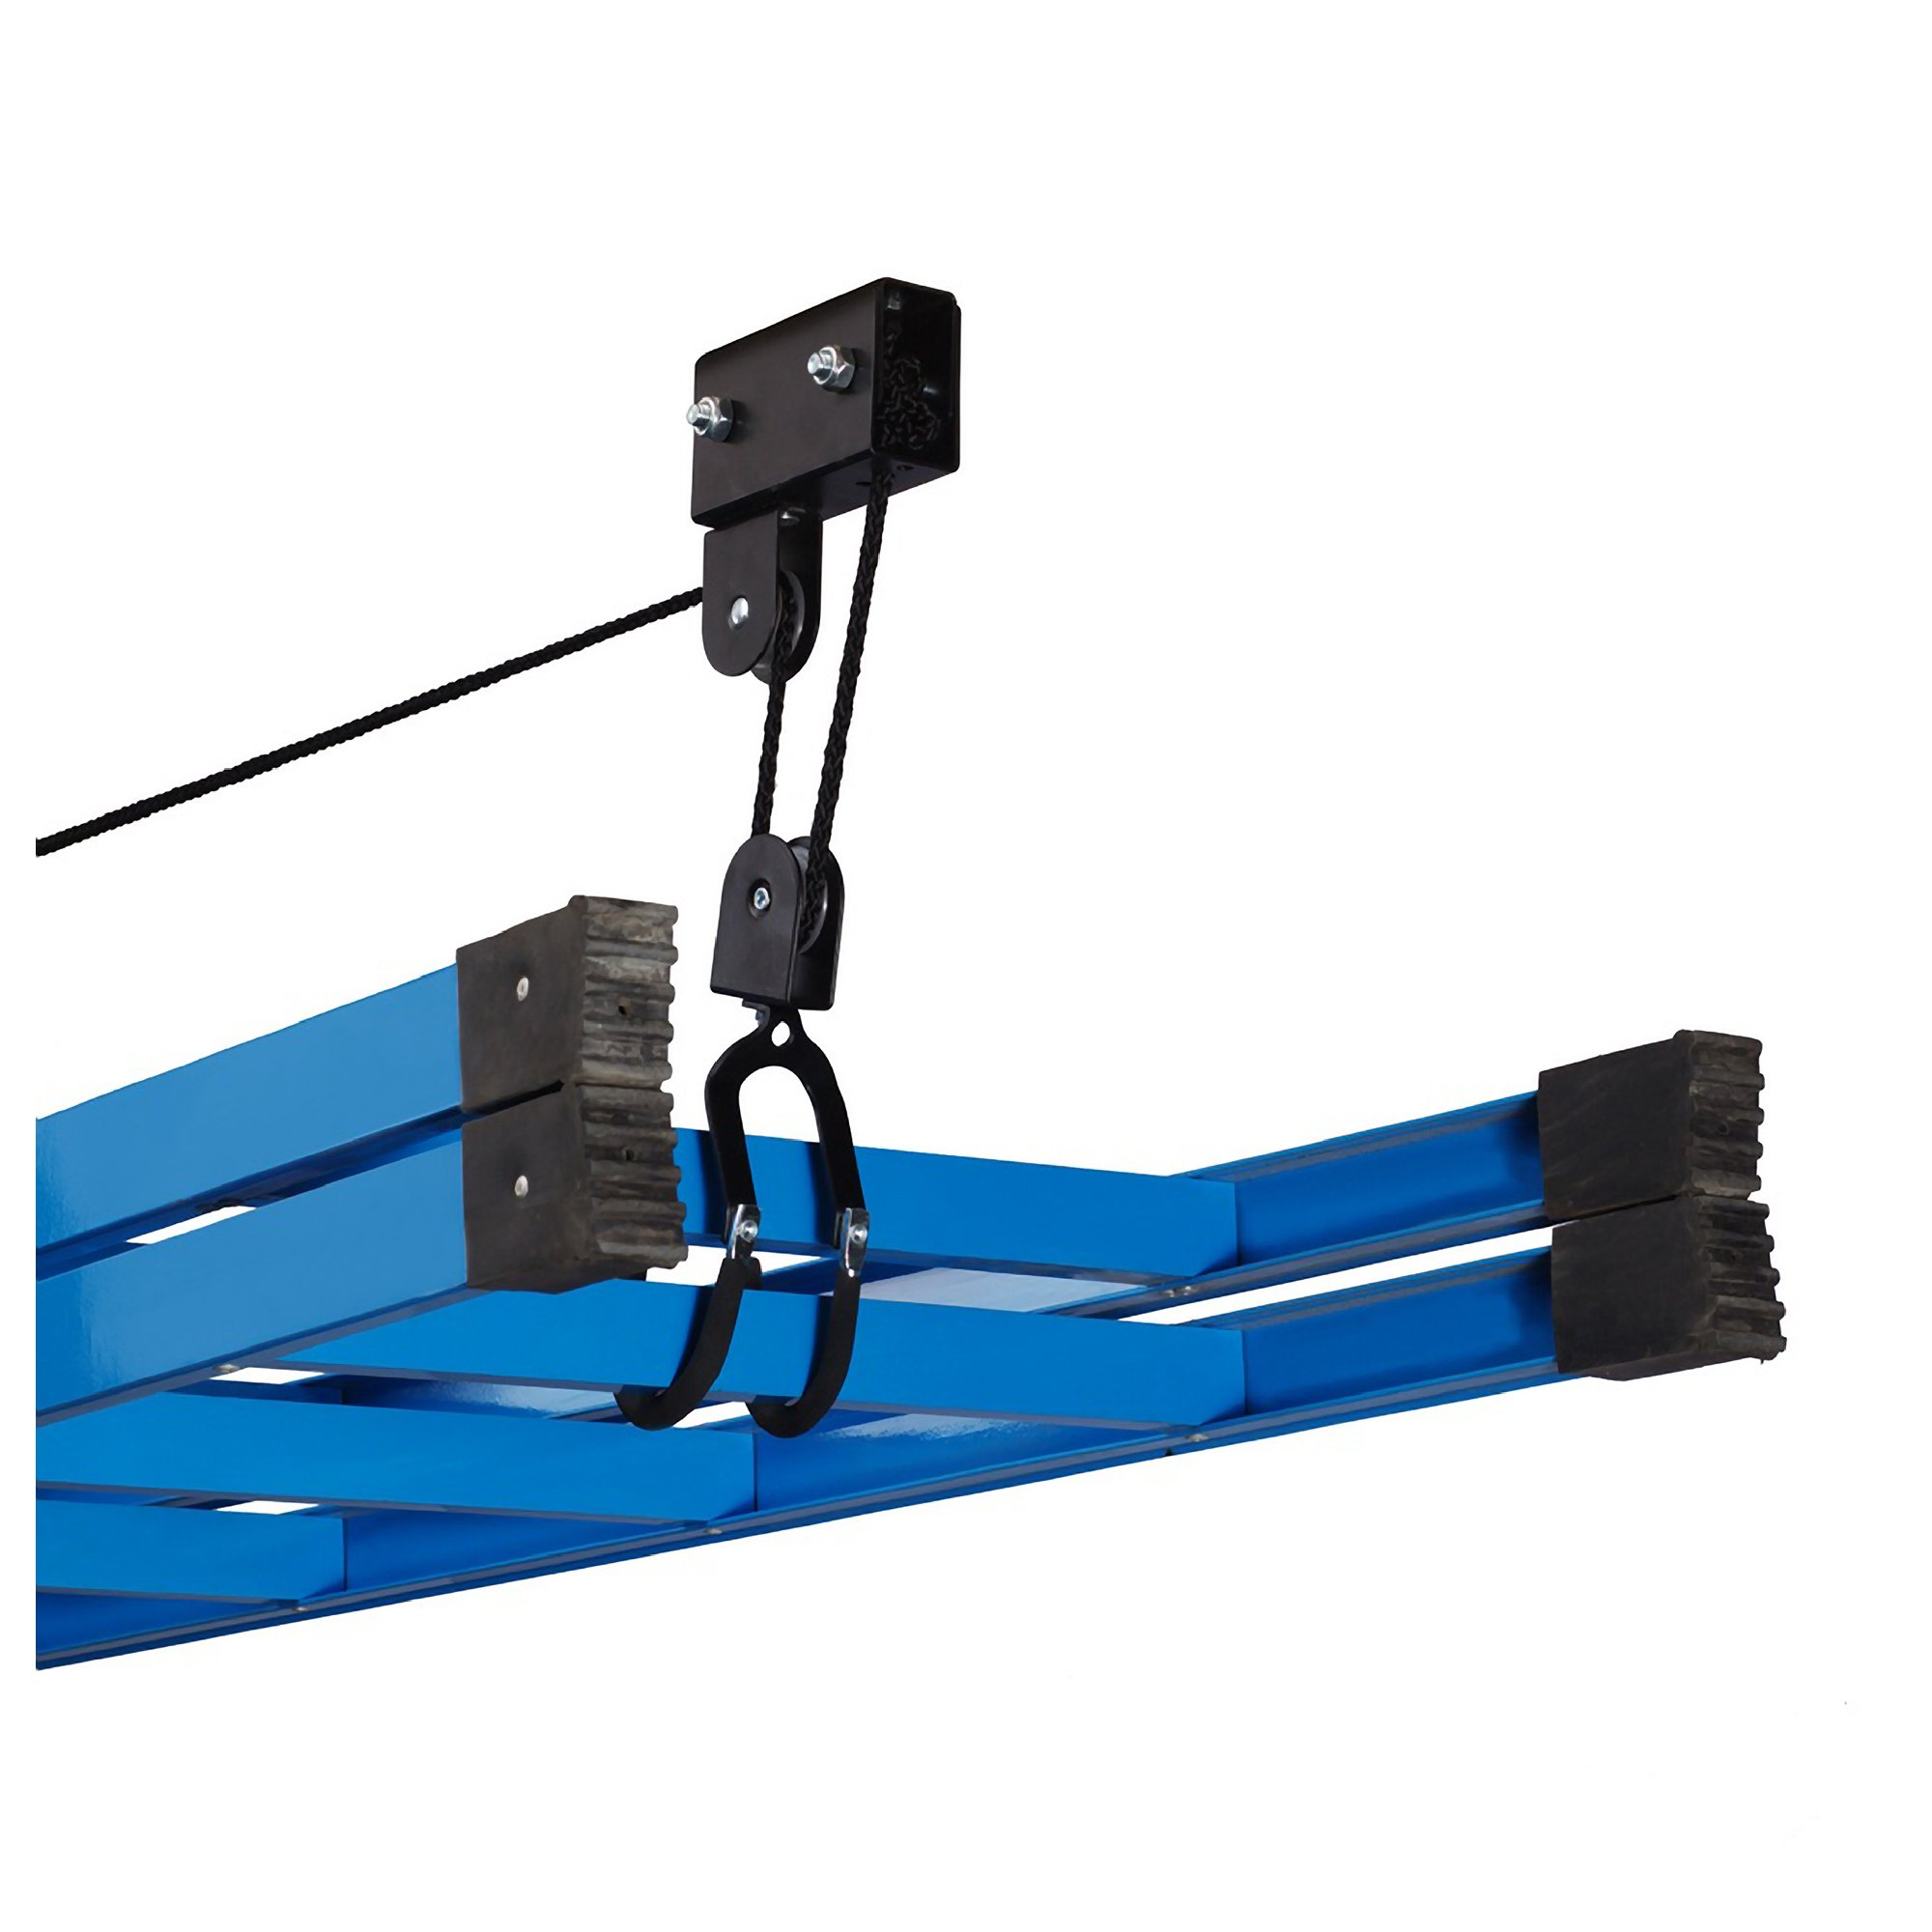 lift system or review is blog beneficial ladder multipurpose canoe purpose item hoist bike a garage for customer multi organizing kayak shed your